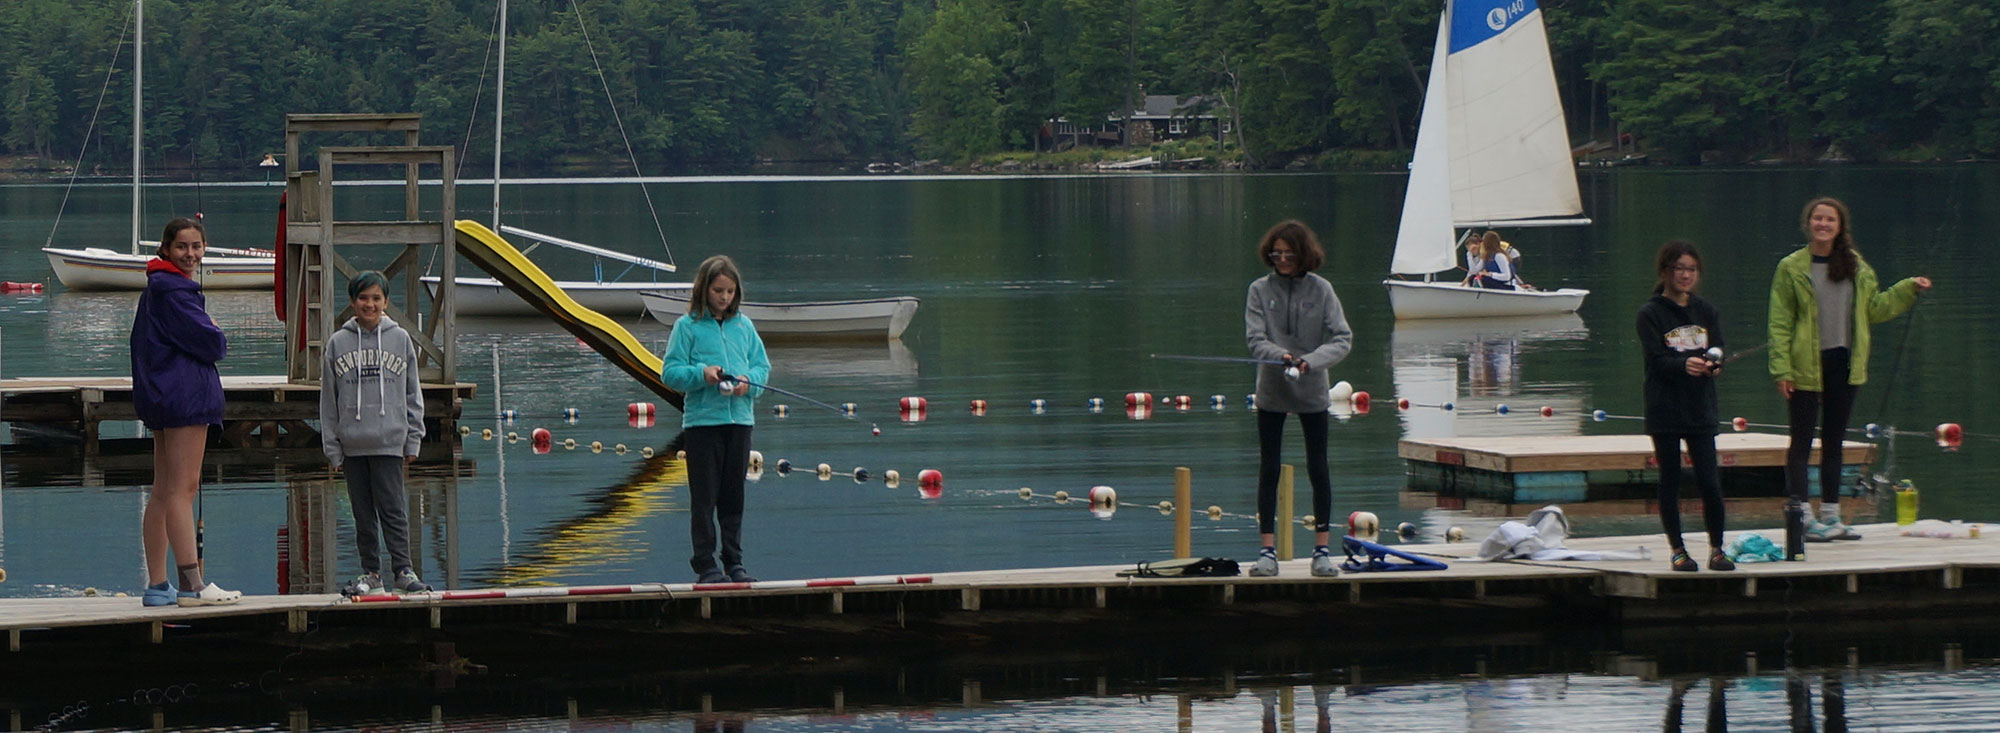 campers on dock fishing